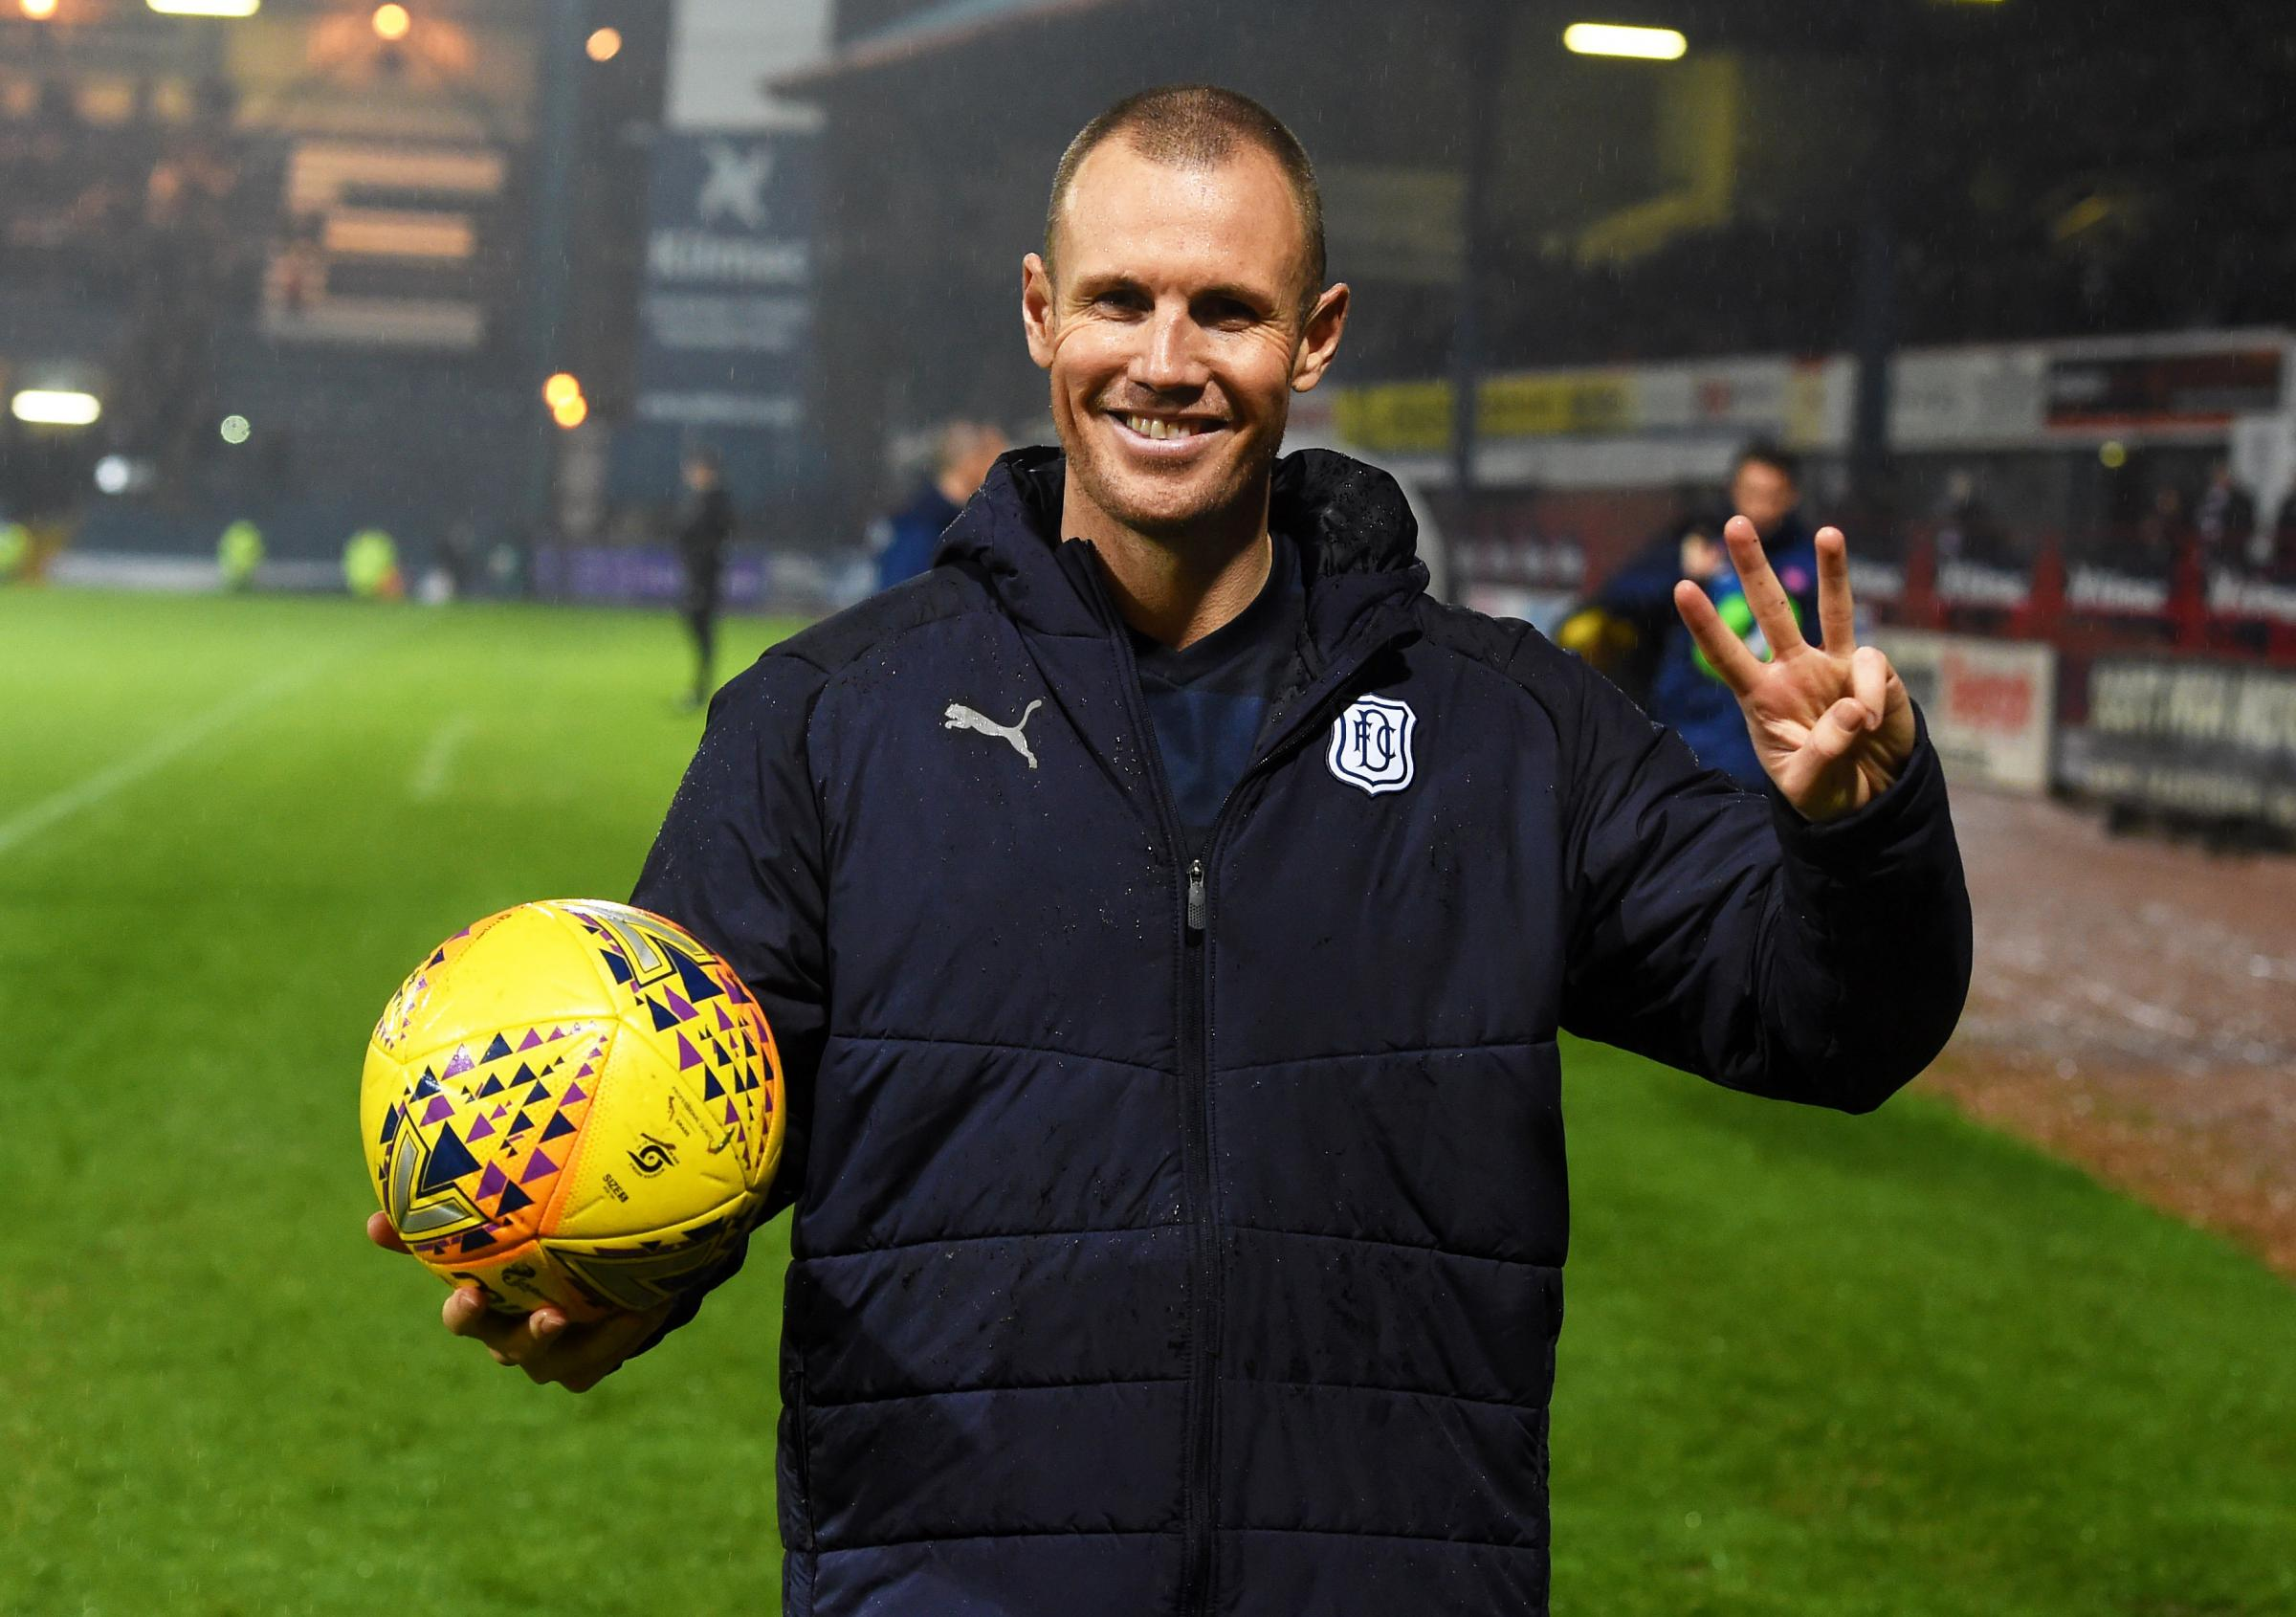 05/12/18 LADBROKES PREMIERSHIP.DUNDEE V HAMILTON (4-0).KILMAC STADIUM AT DENS PARK - DUNDEE.Dundee's Kenny Miller is awarded the match ball for scoring a hat trick.